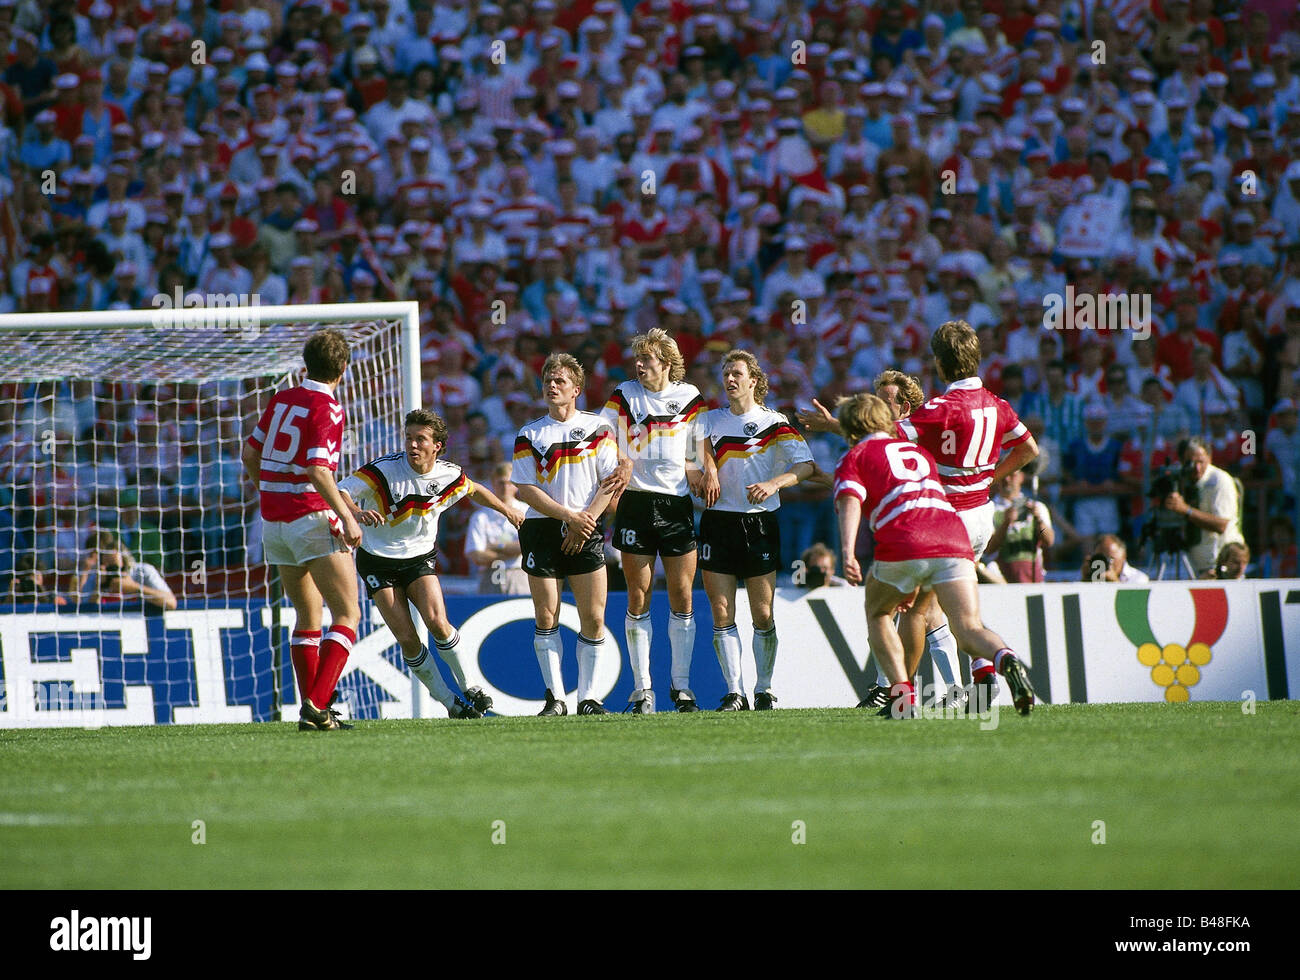 Sport Sports Soccer Football European Championship Euro 1988 Stock Photo Alamy